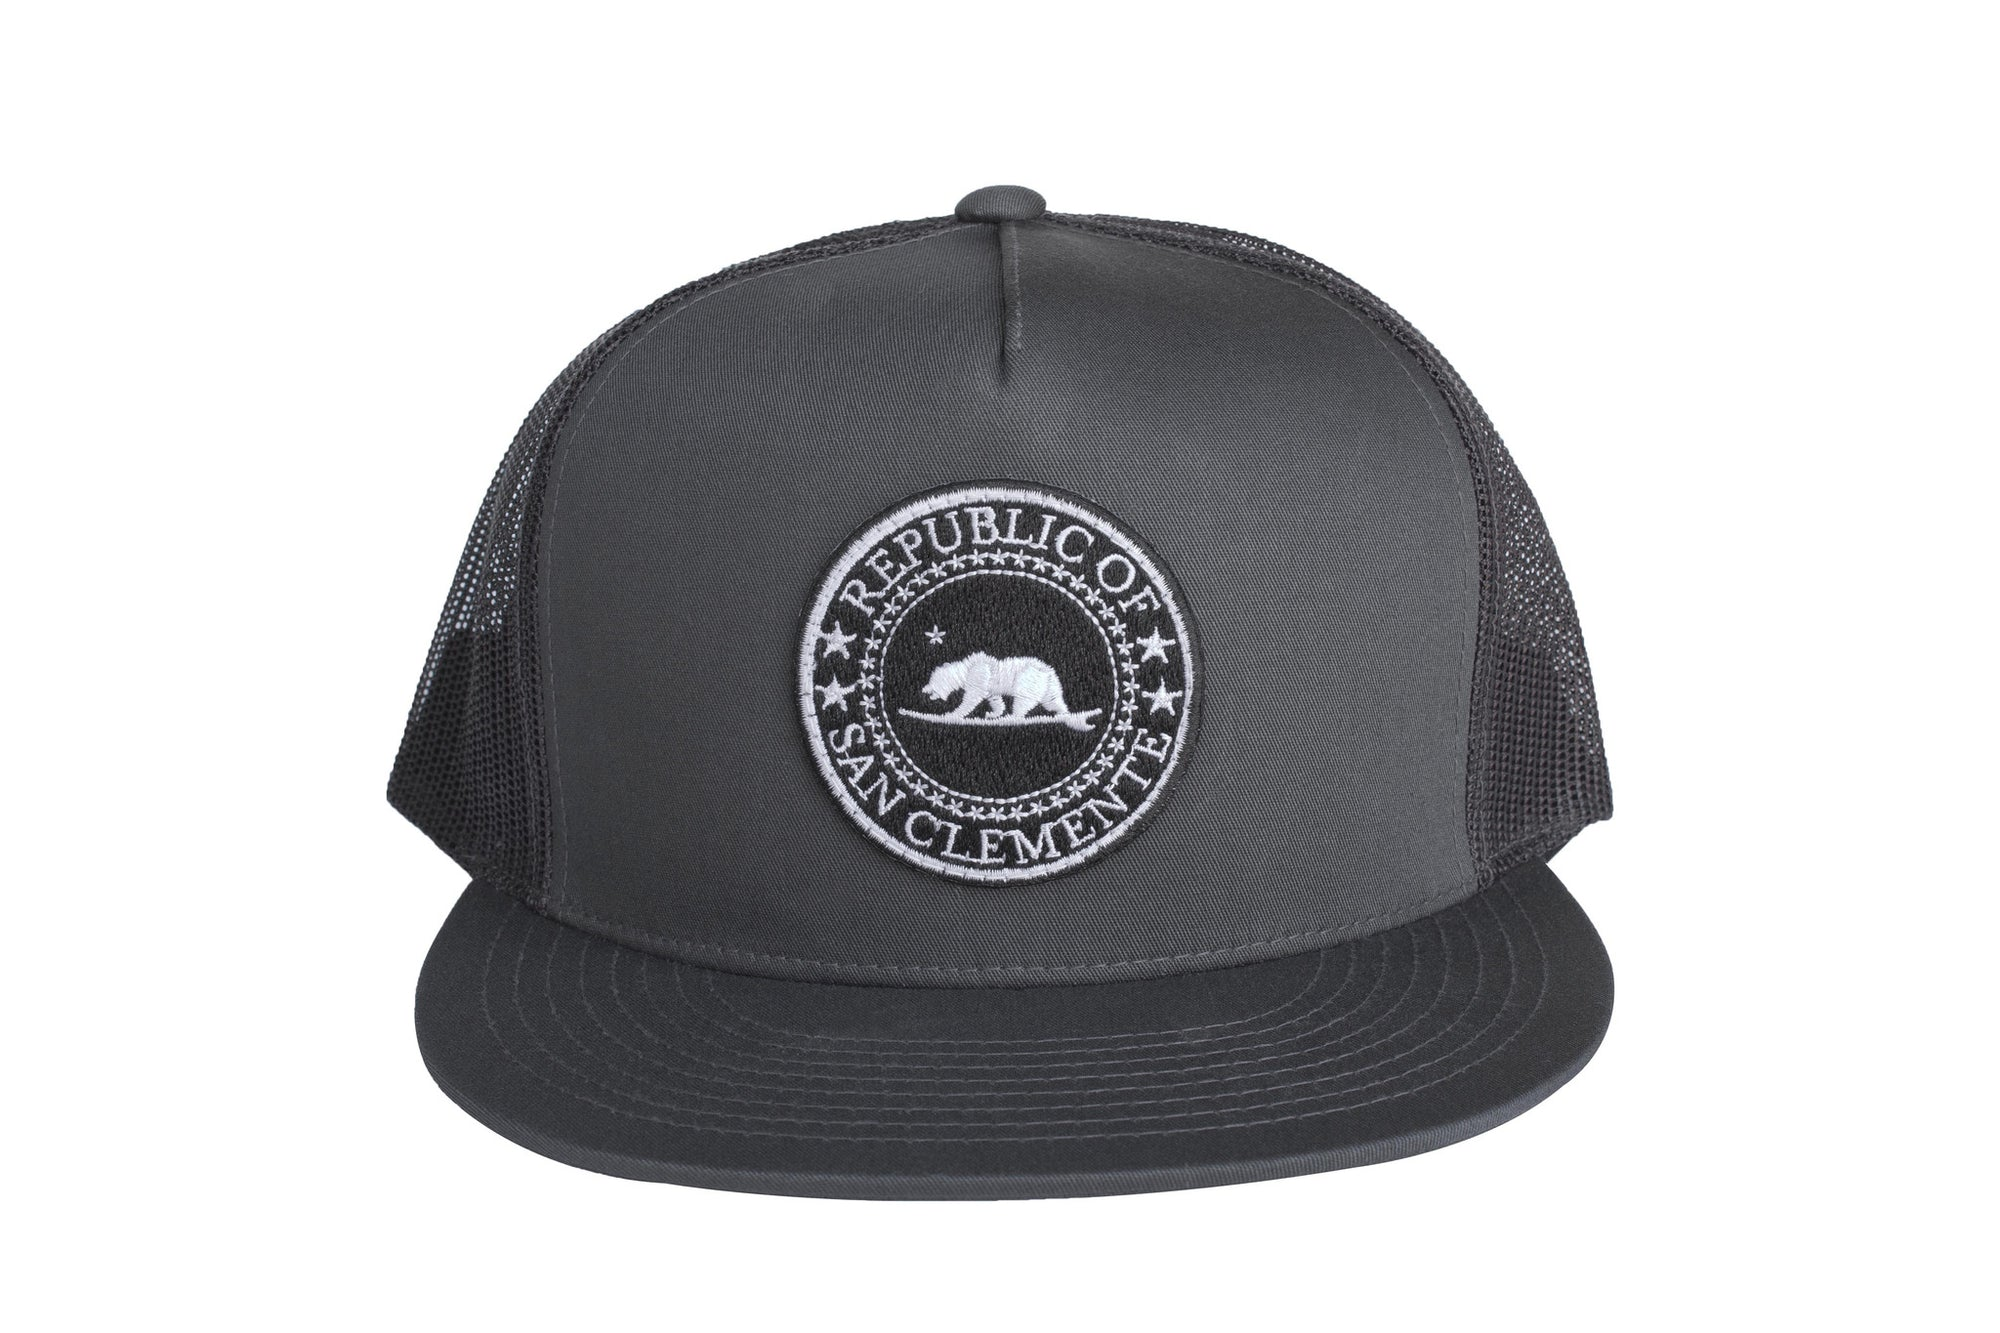 Republic of San Clemente - Surf Bear® premium trucker